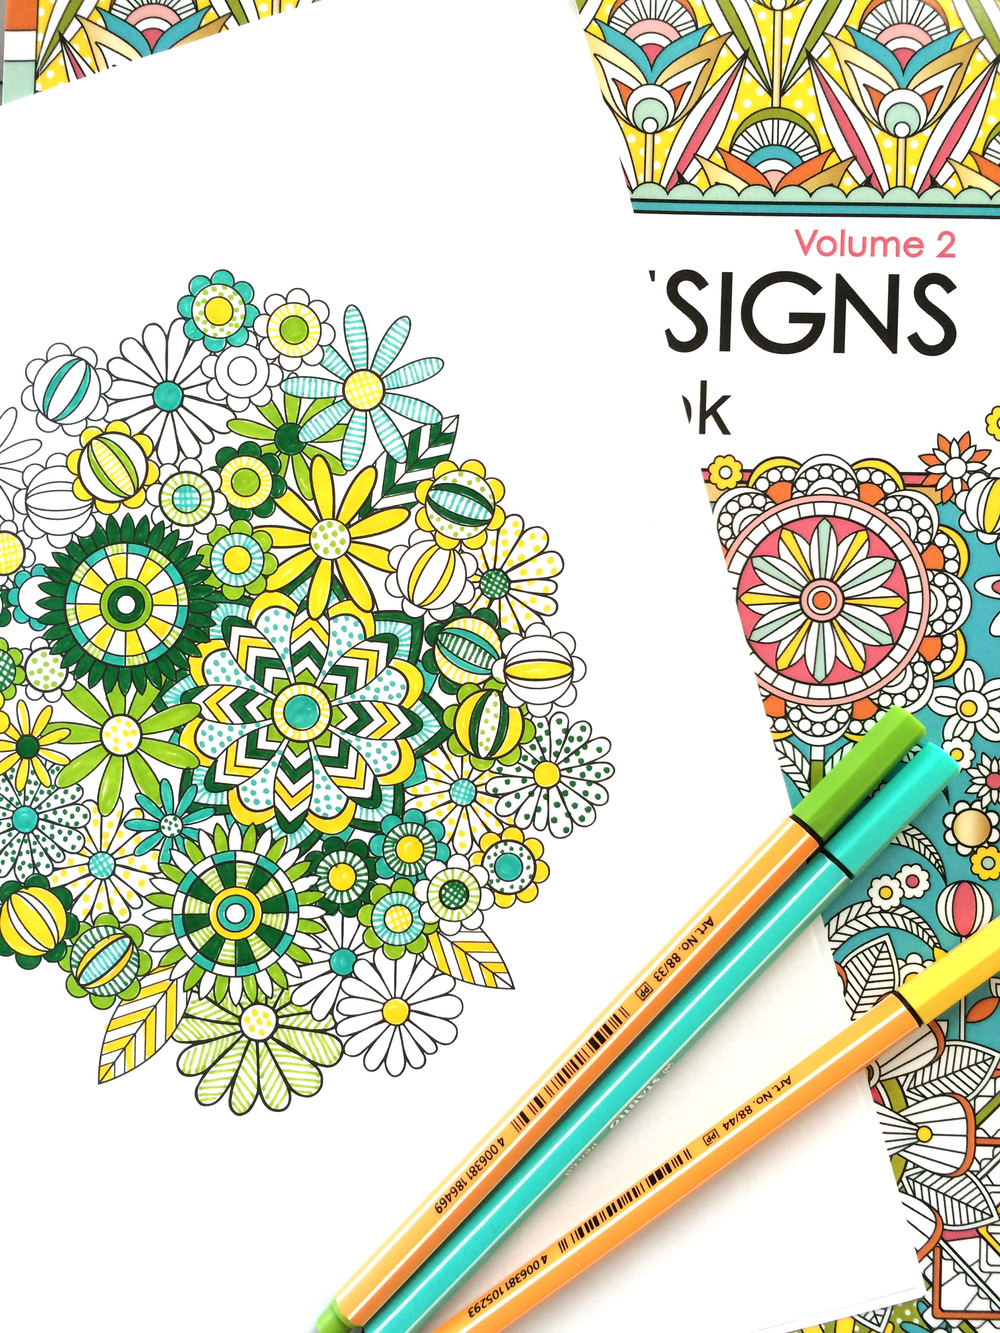 Flower Designs Coloring Book , Volume 2 by Jenean Morrison